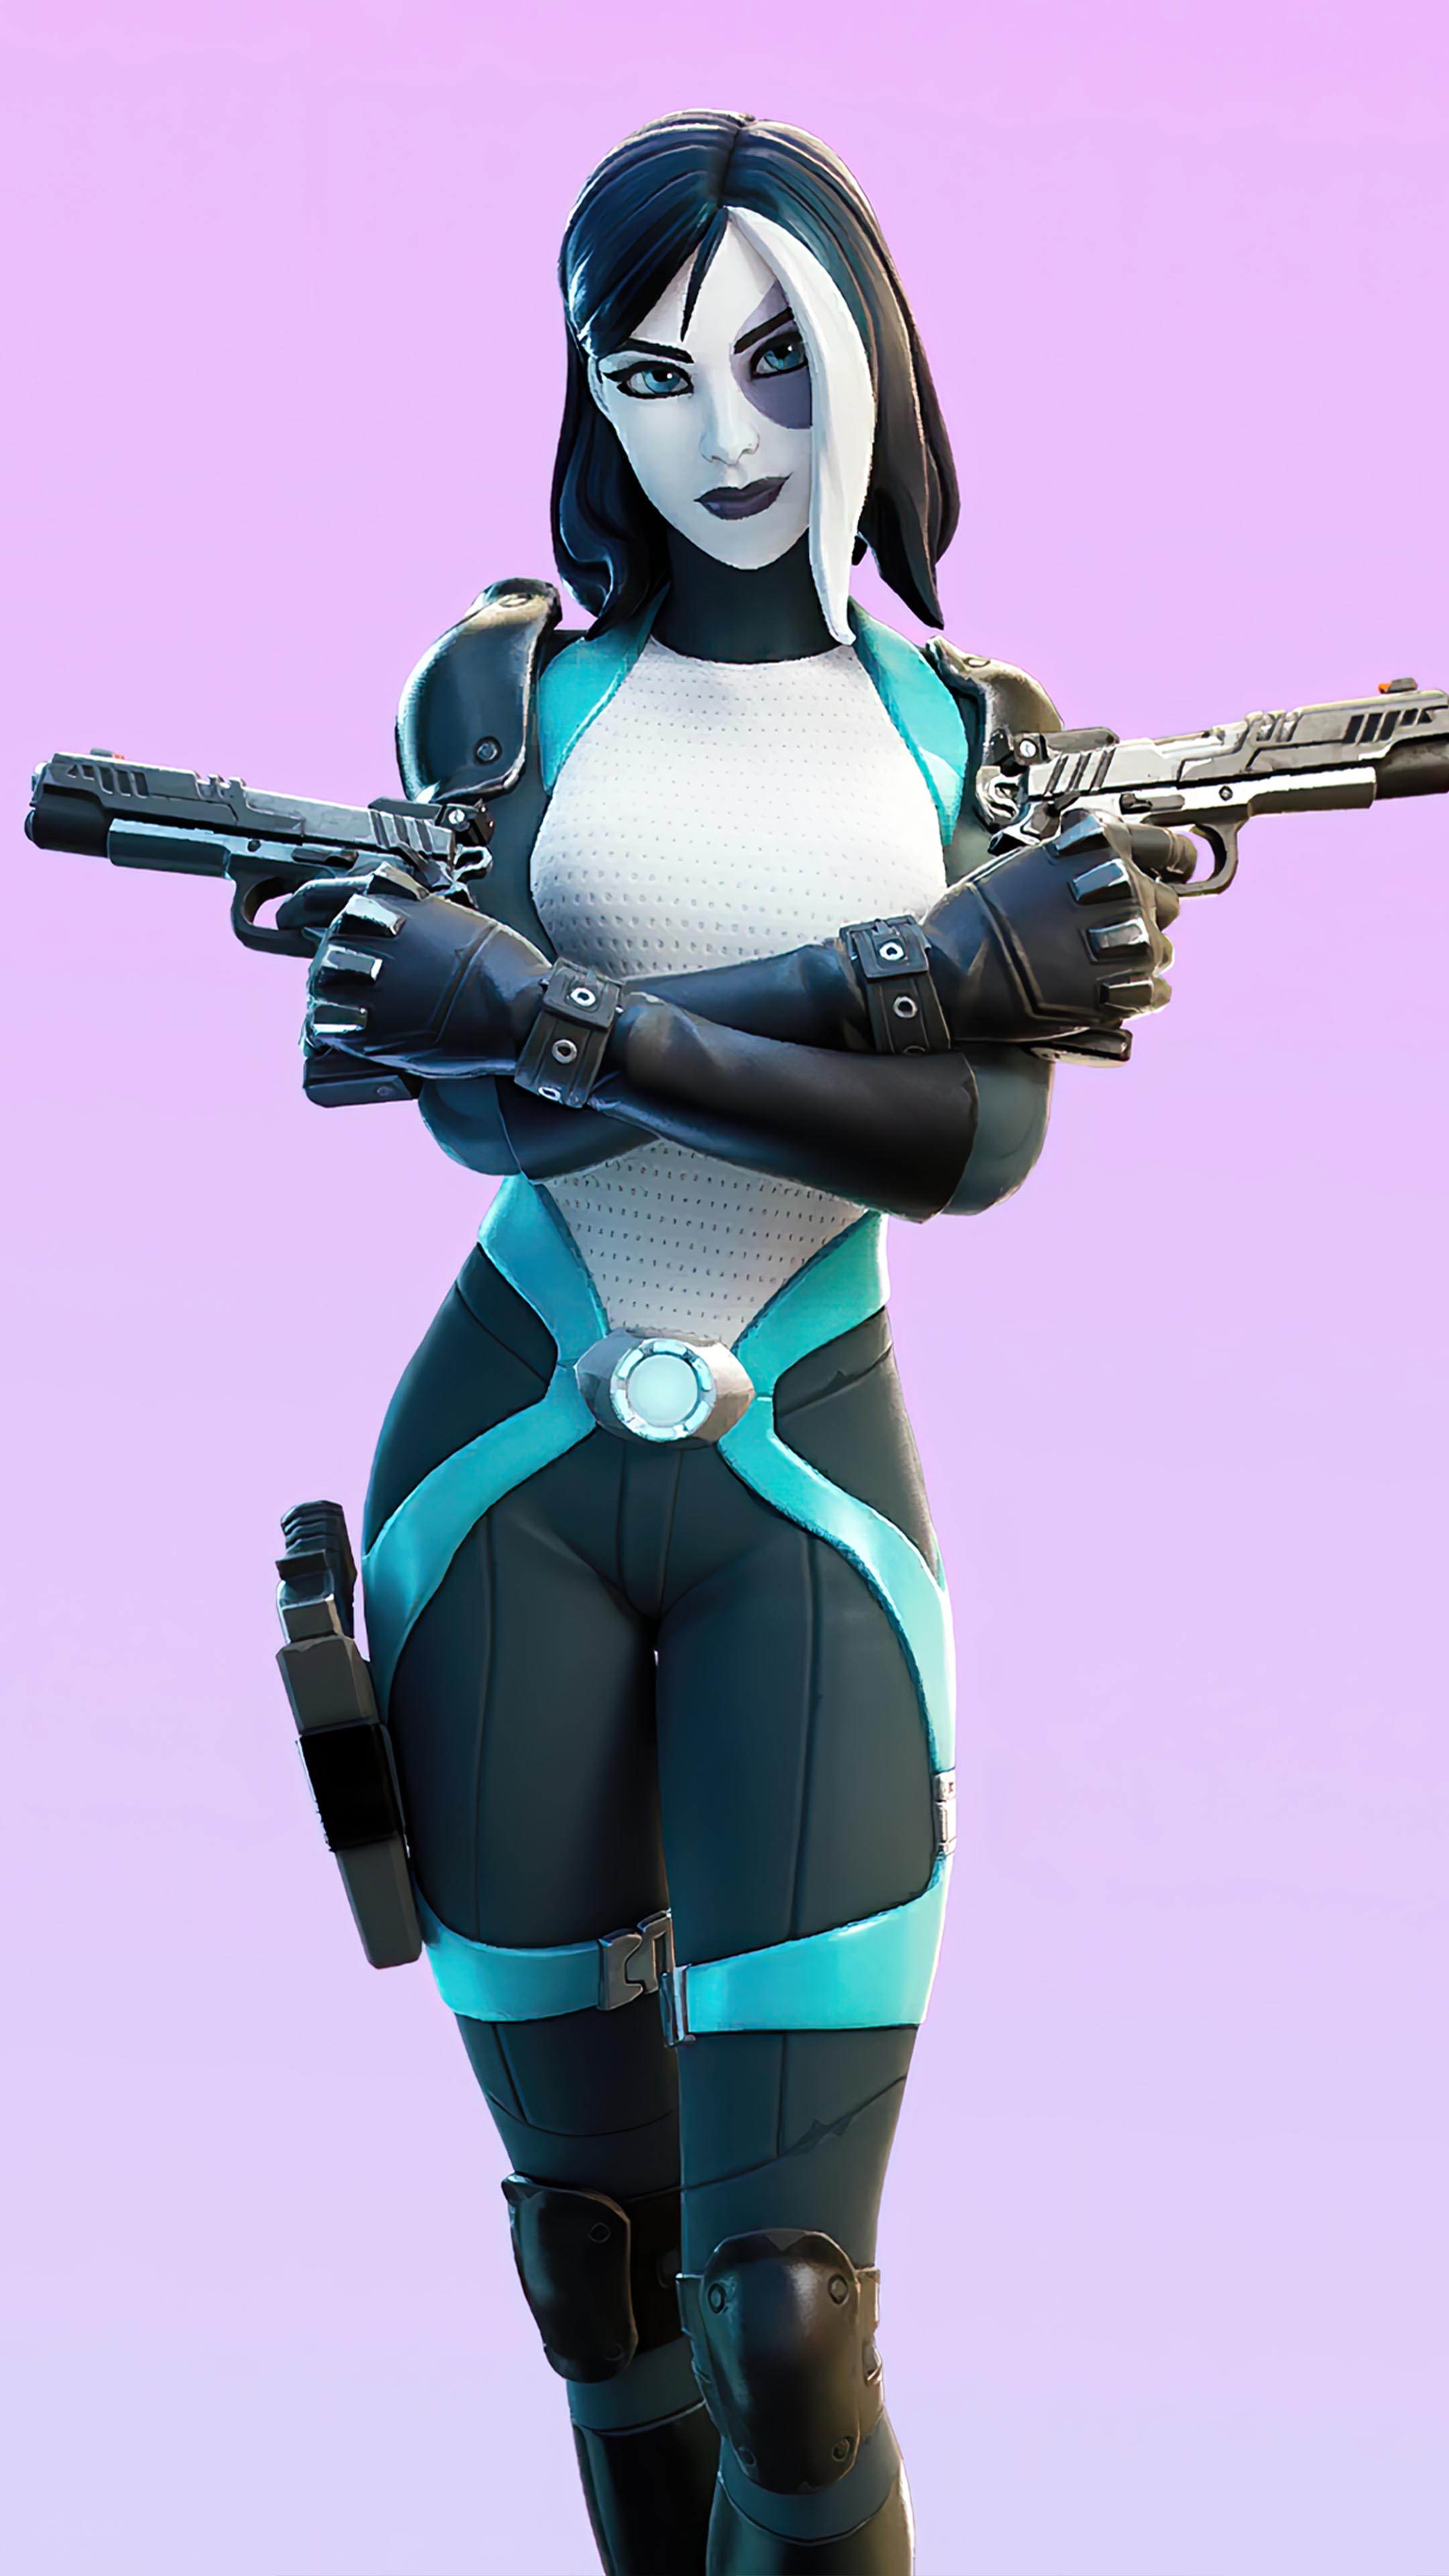 Domino Fortnite Skin 4k Ultra Hd Mobile Wallpaper